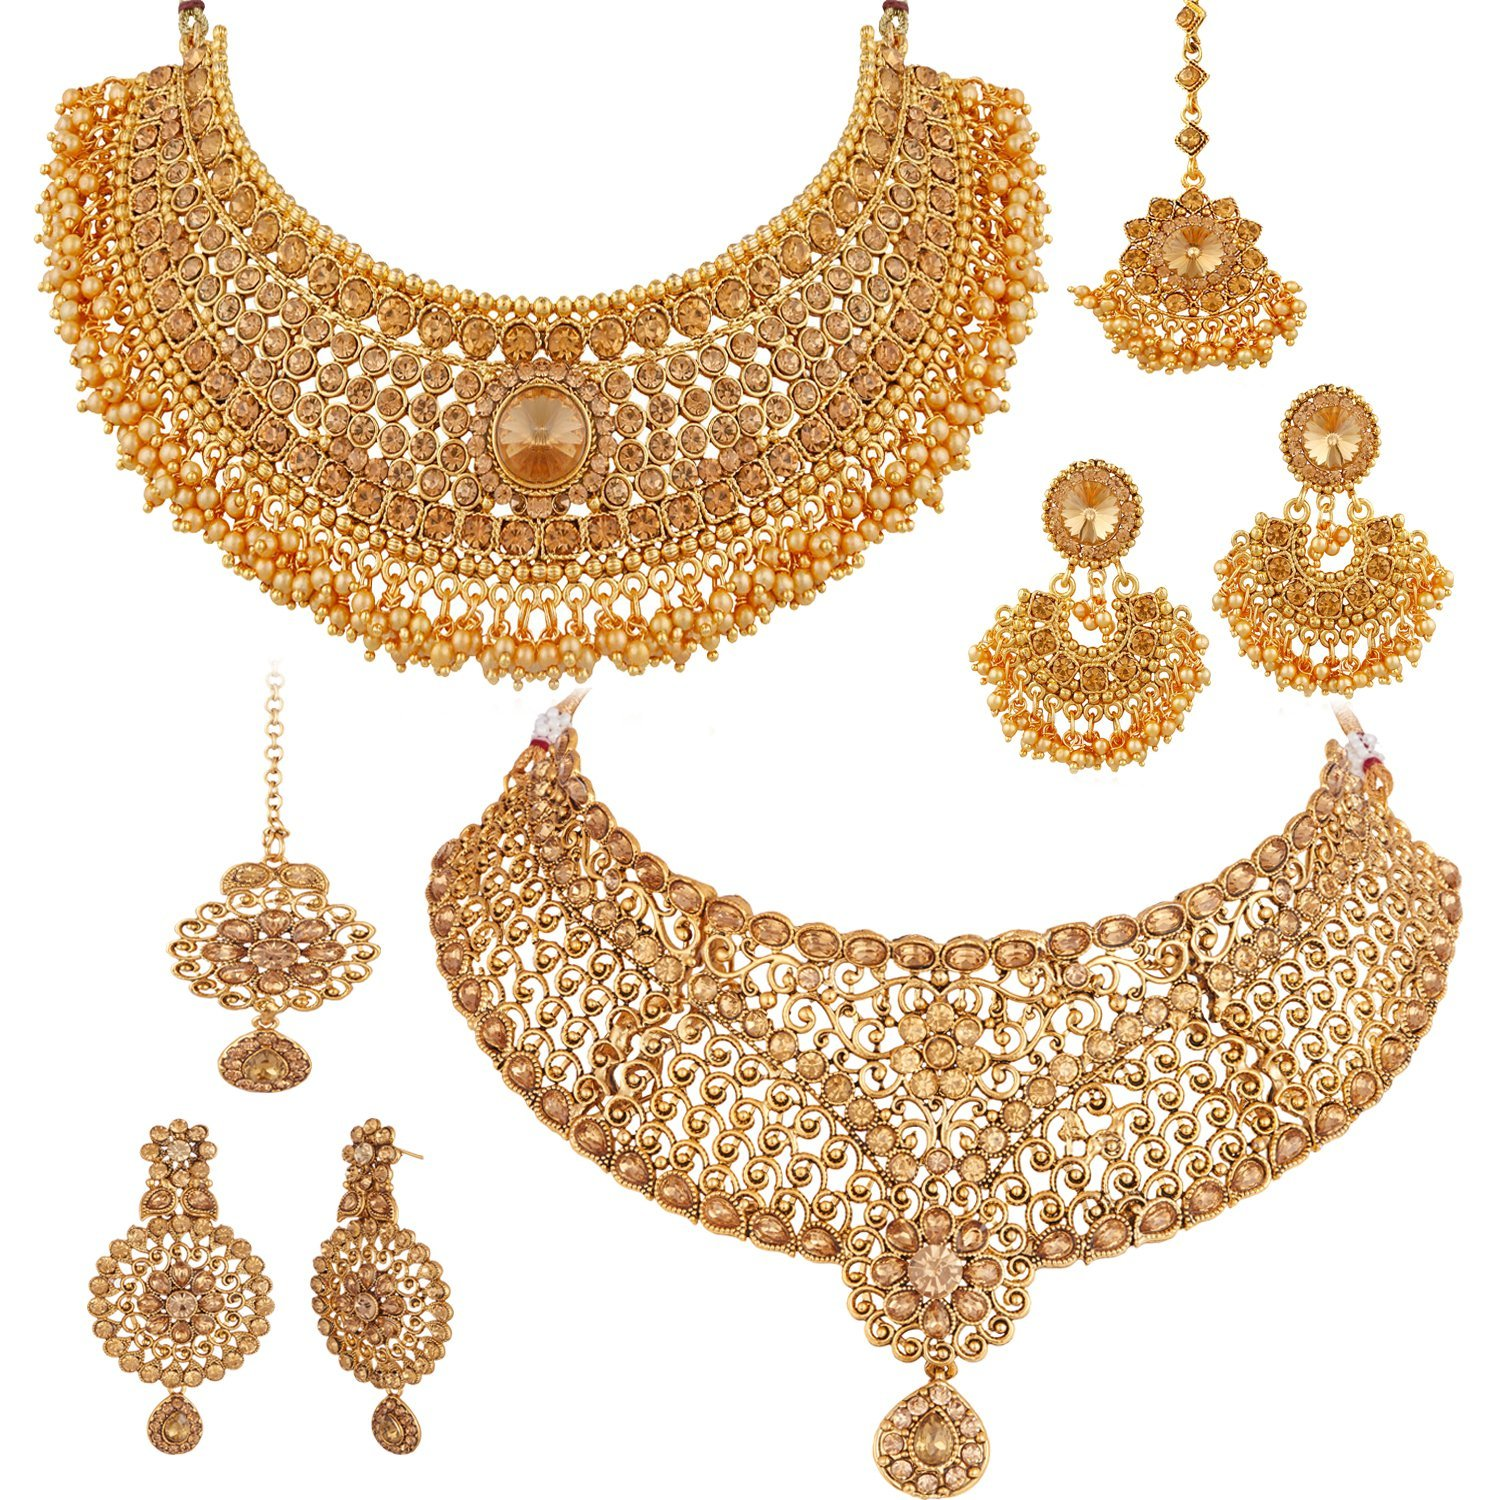 Apara Sparkling Gold Plated LCT Necklace Jewellery Set Combo for Women Rs.550 - Amazon